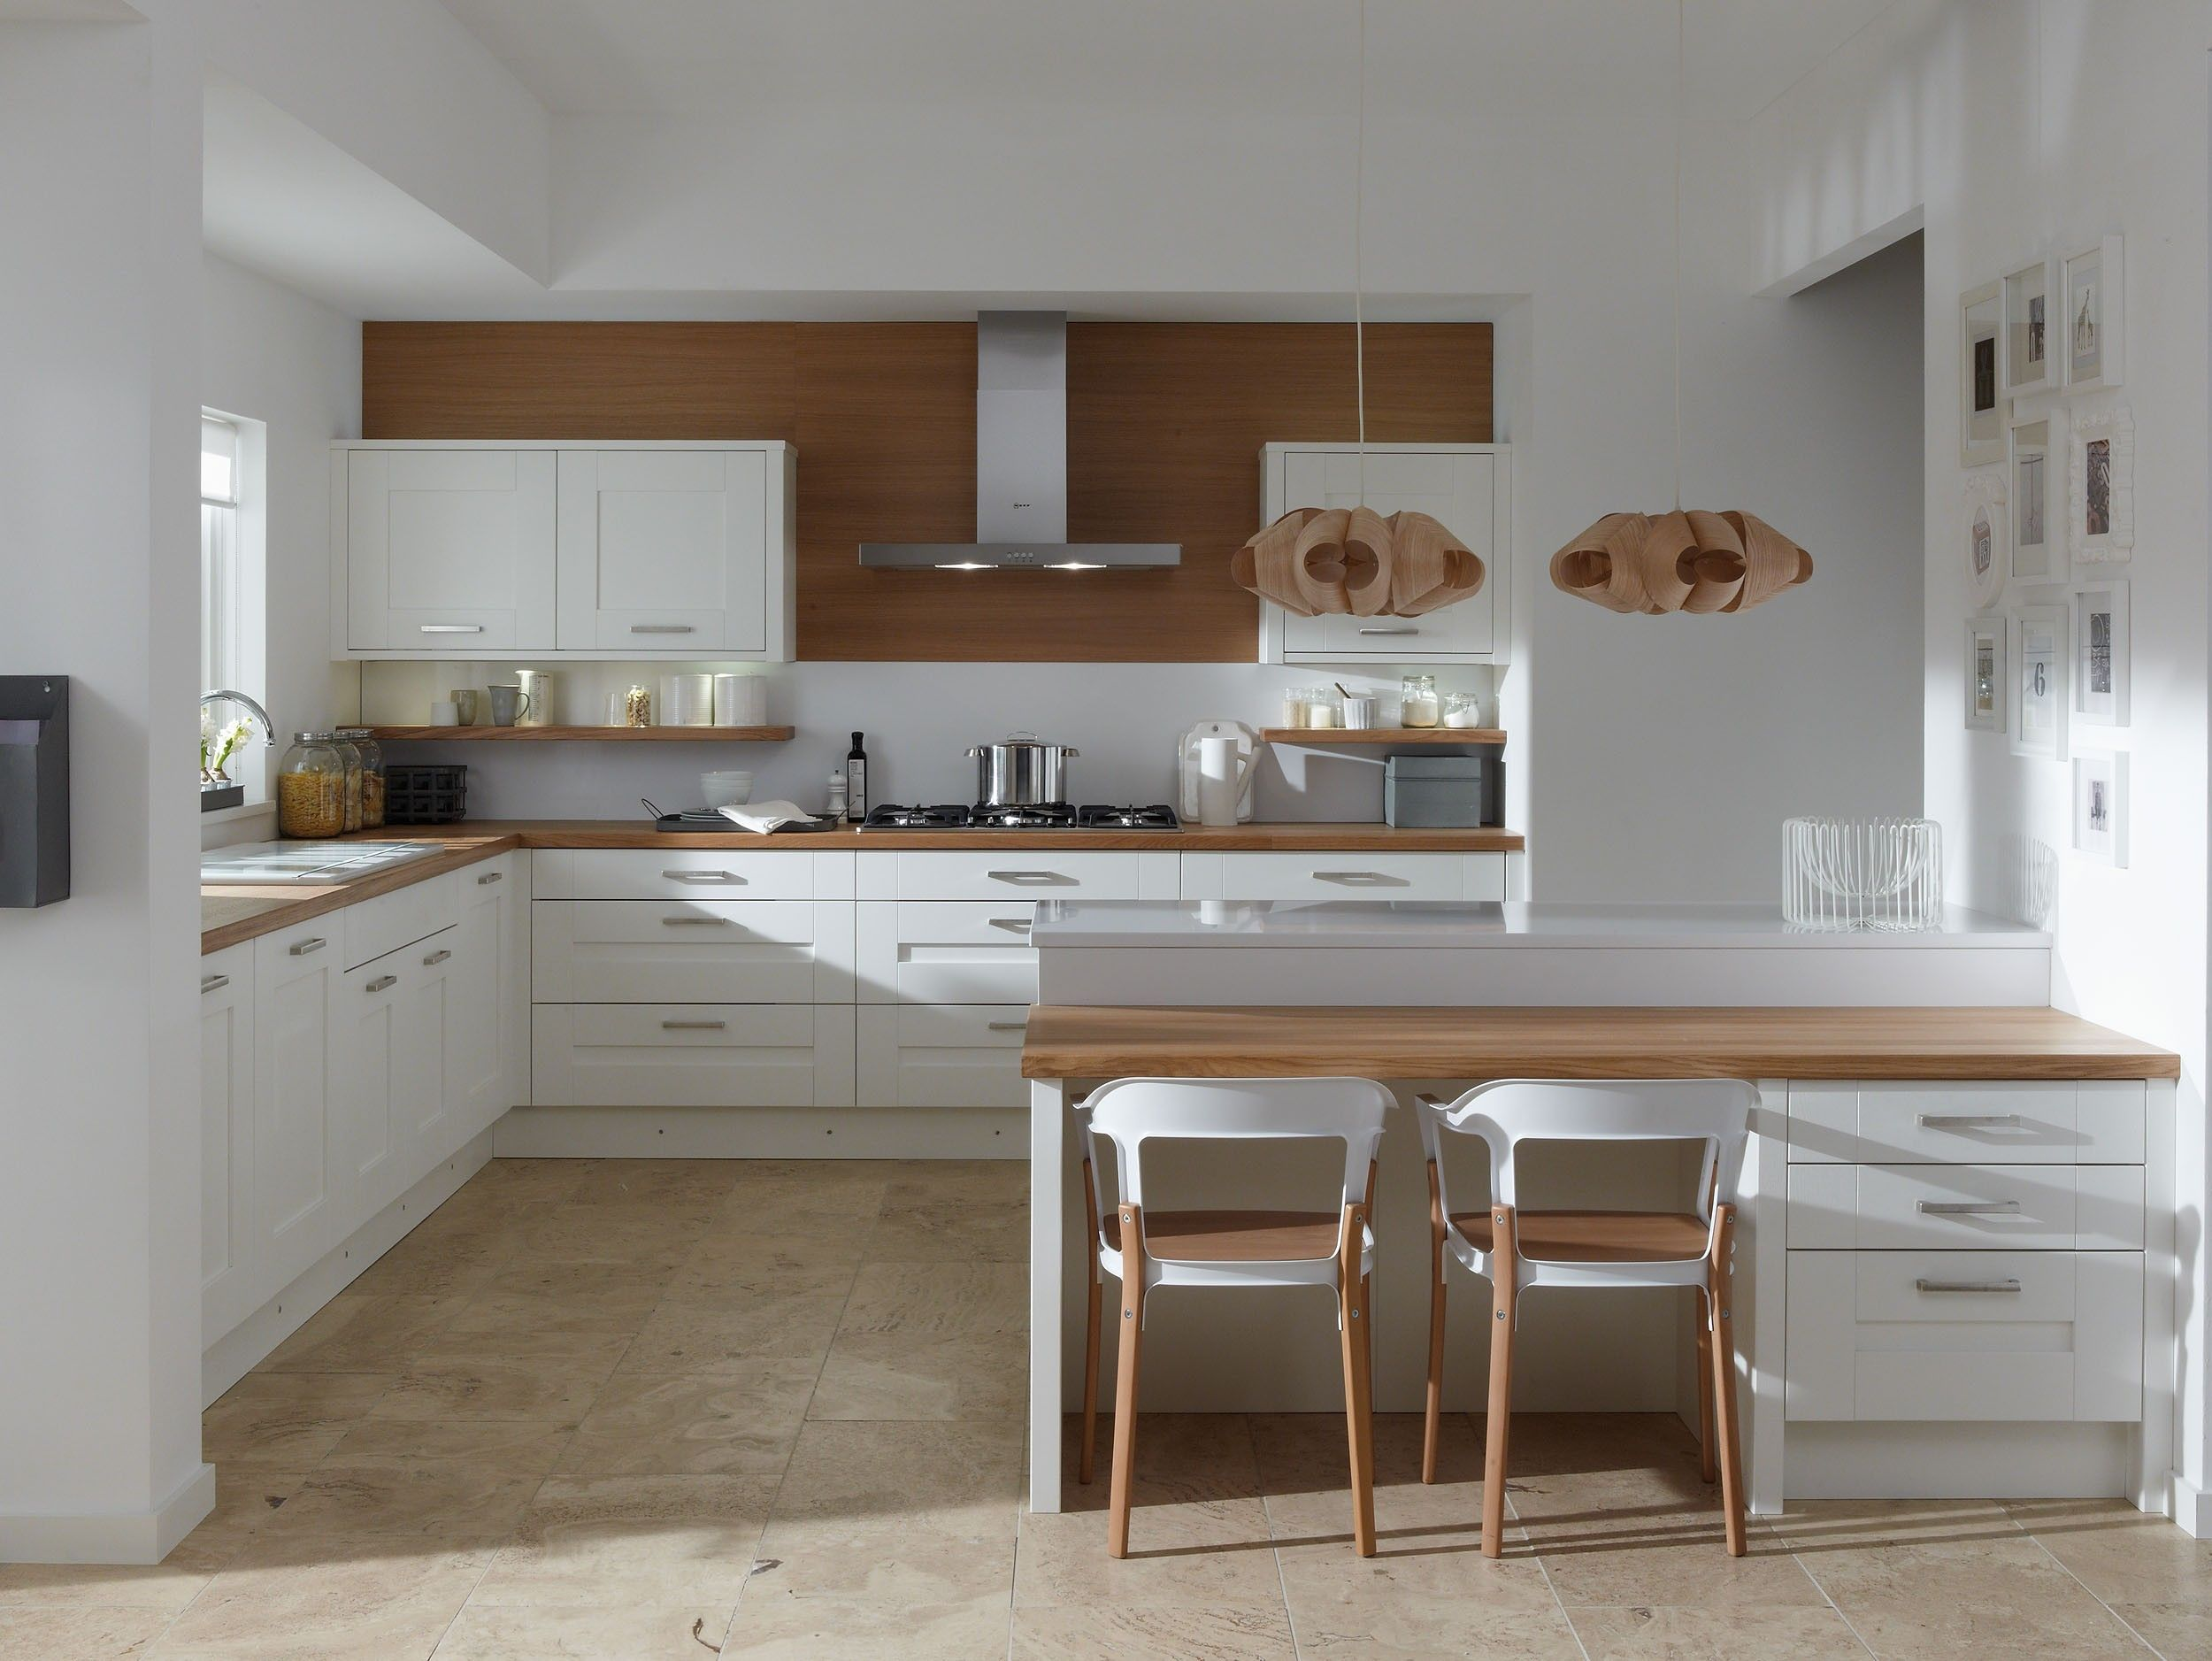 Breathtaking Interior Small Kitchen Remodel Ideas Featuring White U Shape  Wooden Kitchen Cabinet Have A Natural